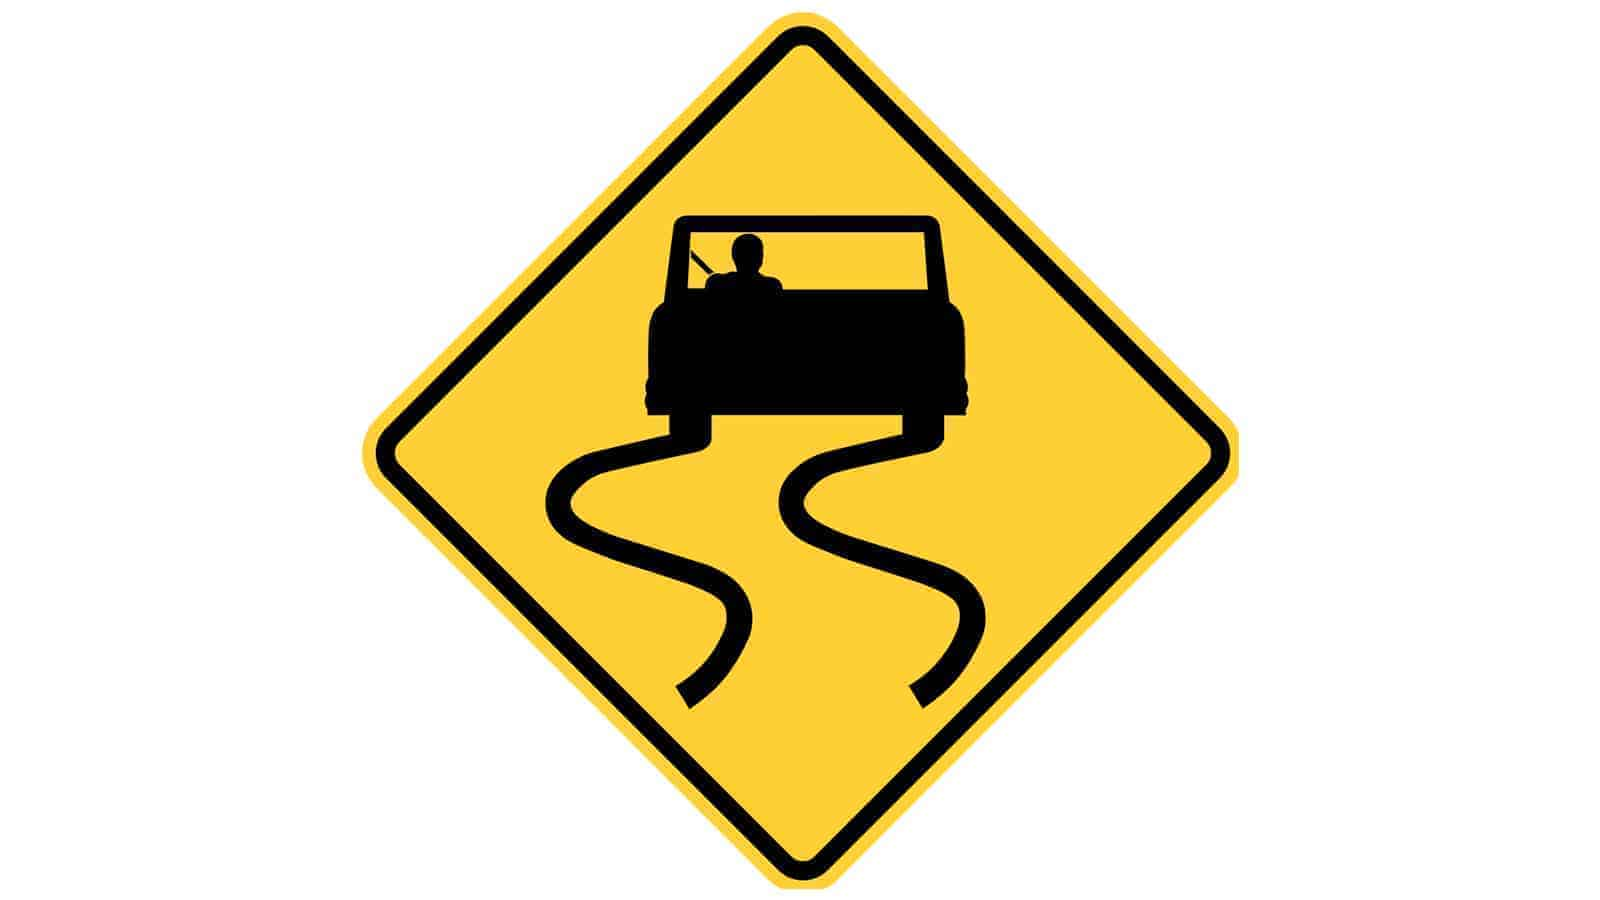 Warning sign Road Slippery When Wet